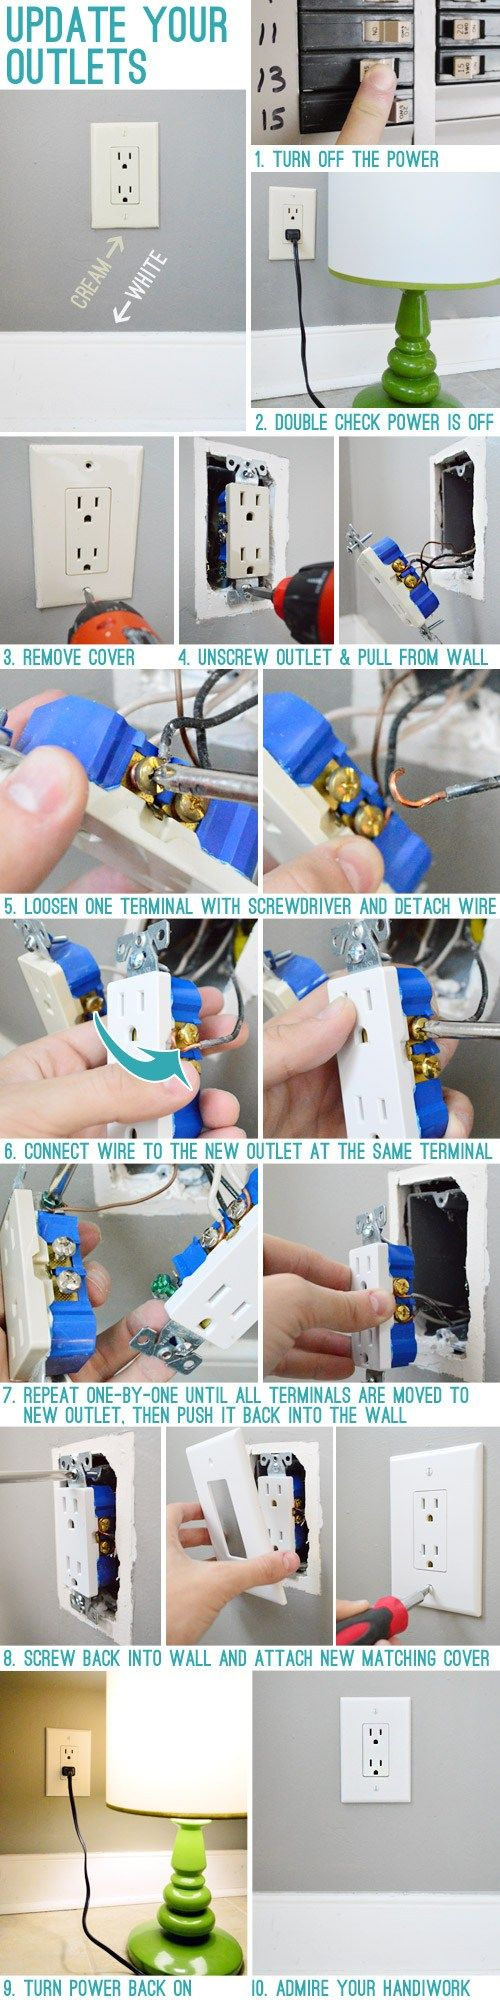 How To Update Your Outlets Step By Pics Home Pinterest Wiring A House Young Love